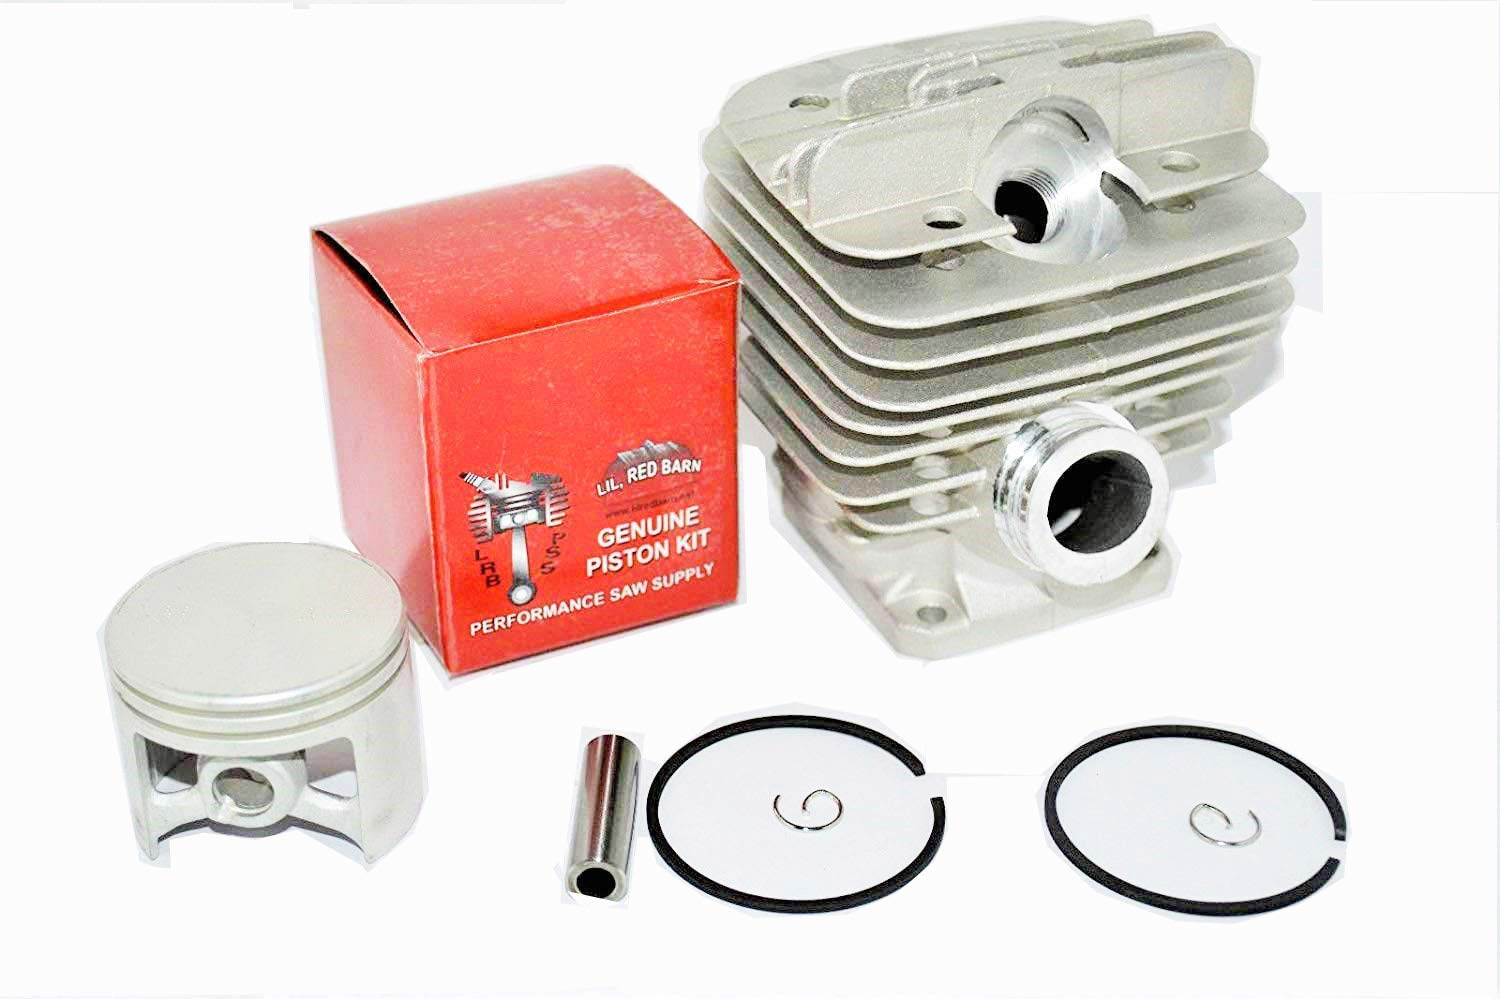 Lil Red Barn Stihl 034, 034 Super, 036 Cylinder & Piston Kit w Gaskets 48mm, Replaces Stihl Part # 1125-020-1202 or 1125-020-1209